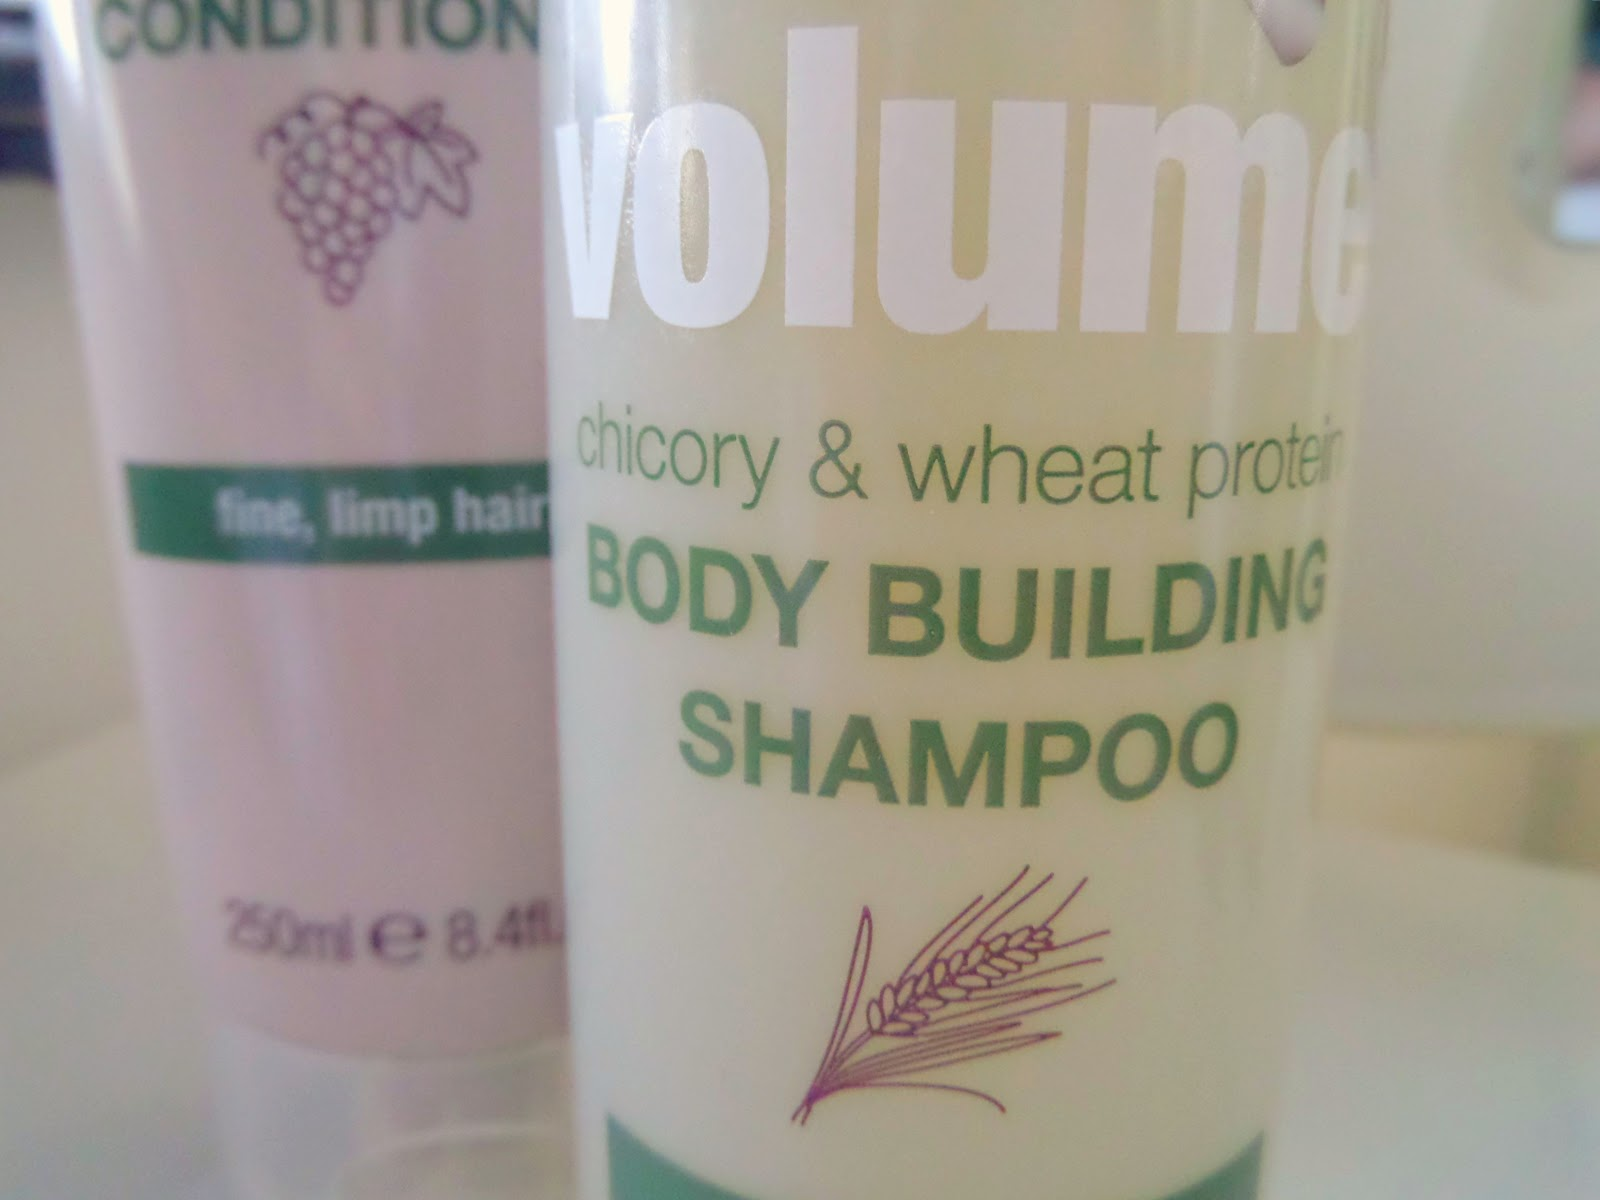 Naked Volume Body Building Shampoo & Weightless Conditioner Bottle